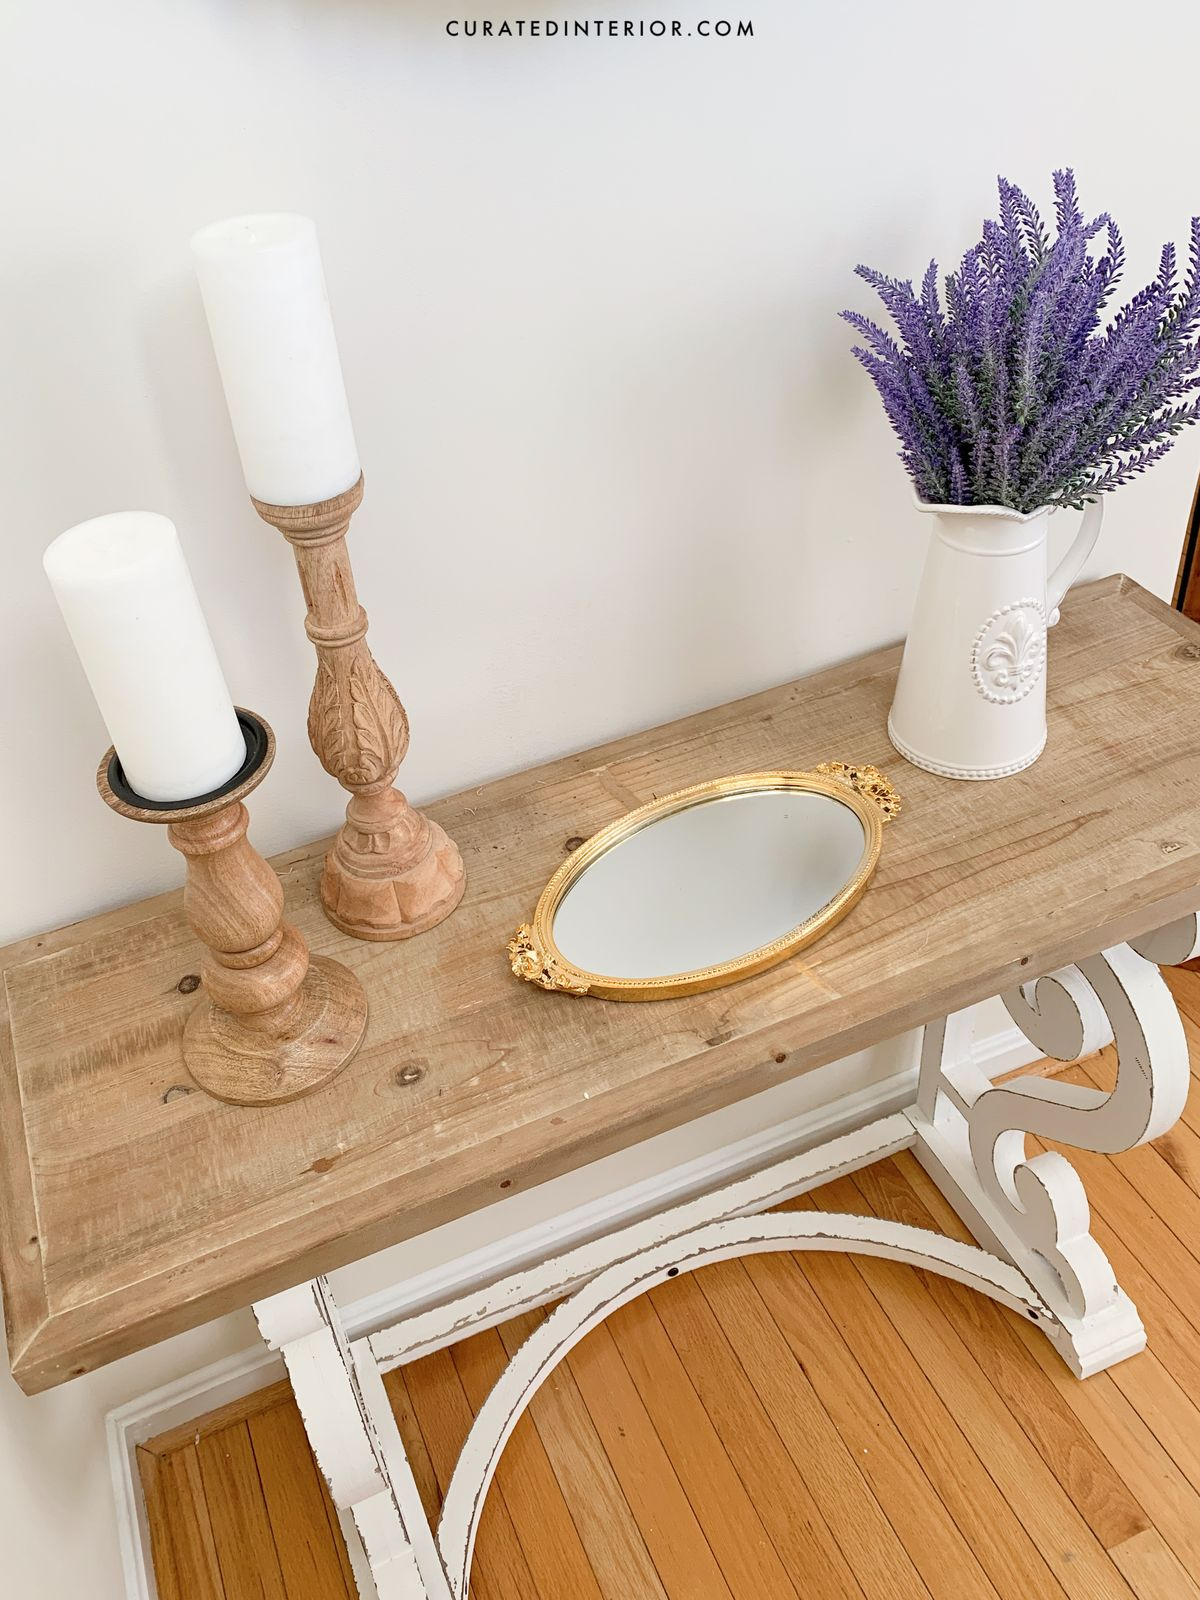 French Country Console Table with Wood Candlesticks, Vintage Mirror Tray and White Pitcher with Lavender